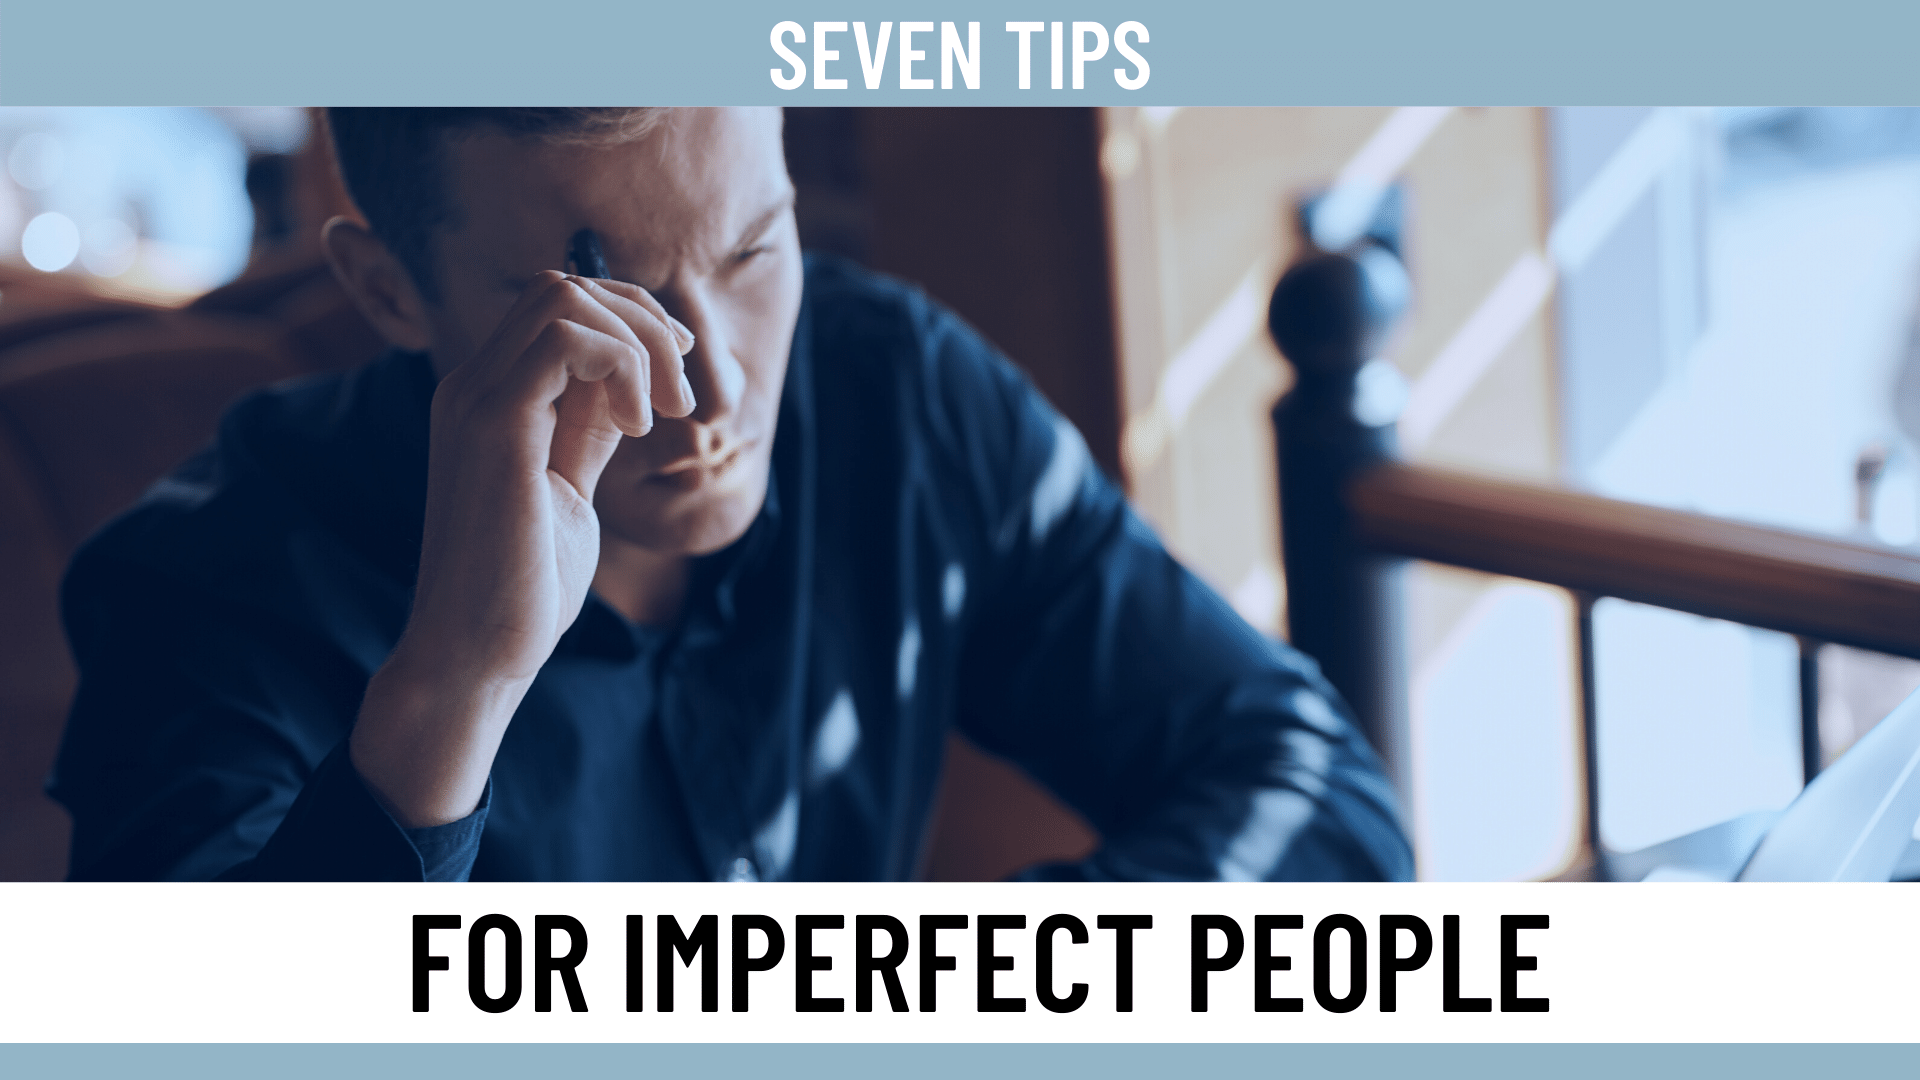 Seven Tips for Imperfect People